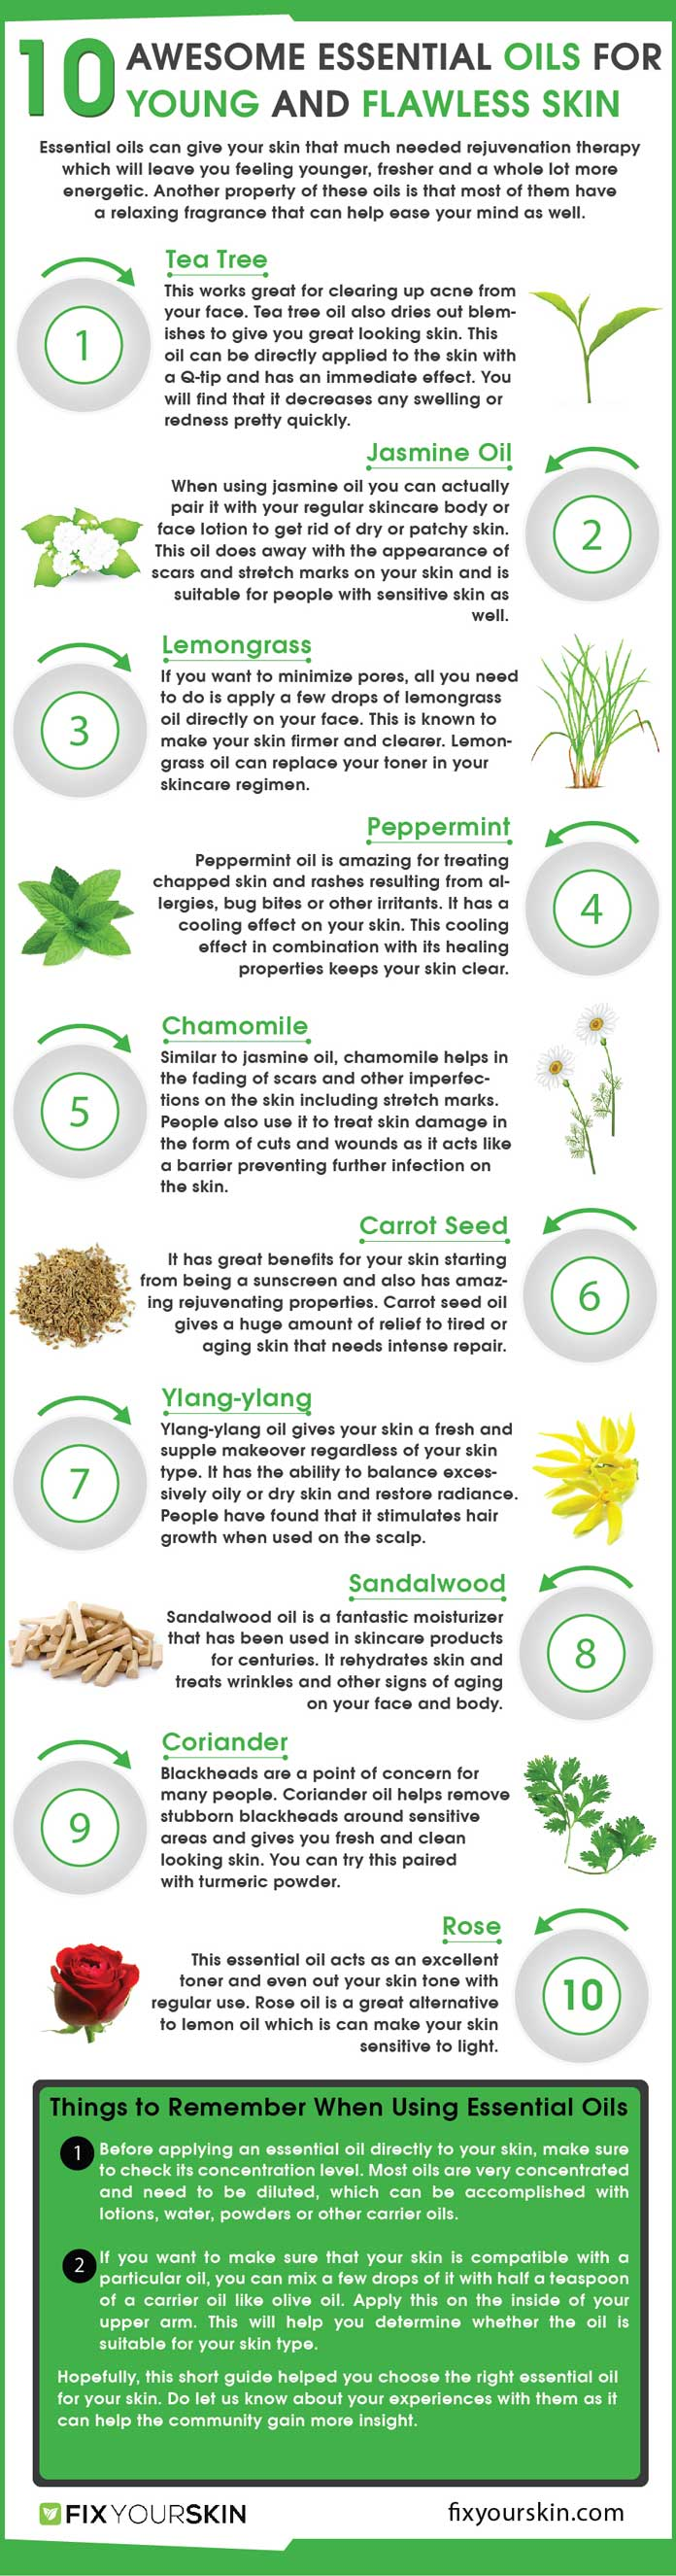 10 Awesome Essential Oils